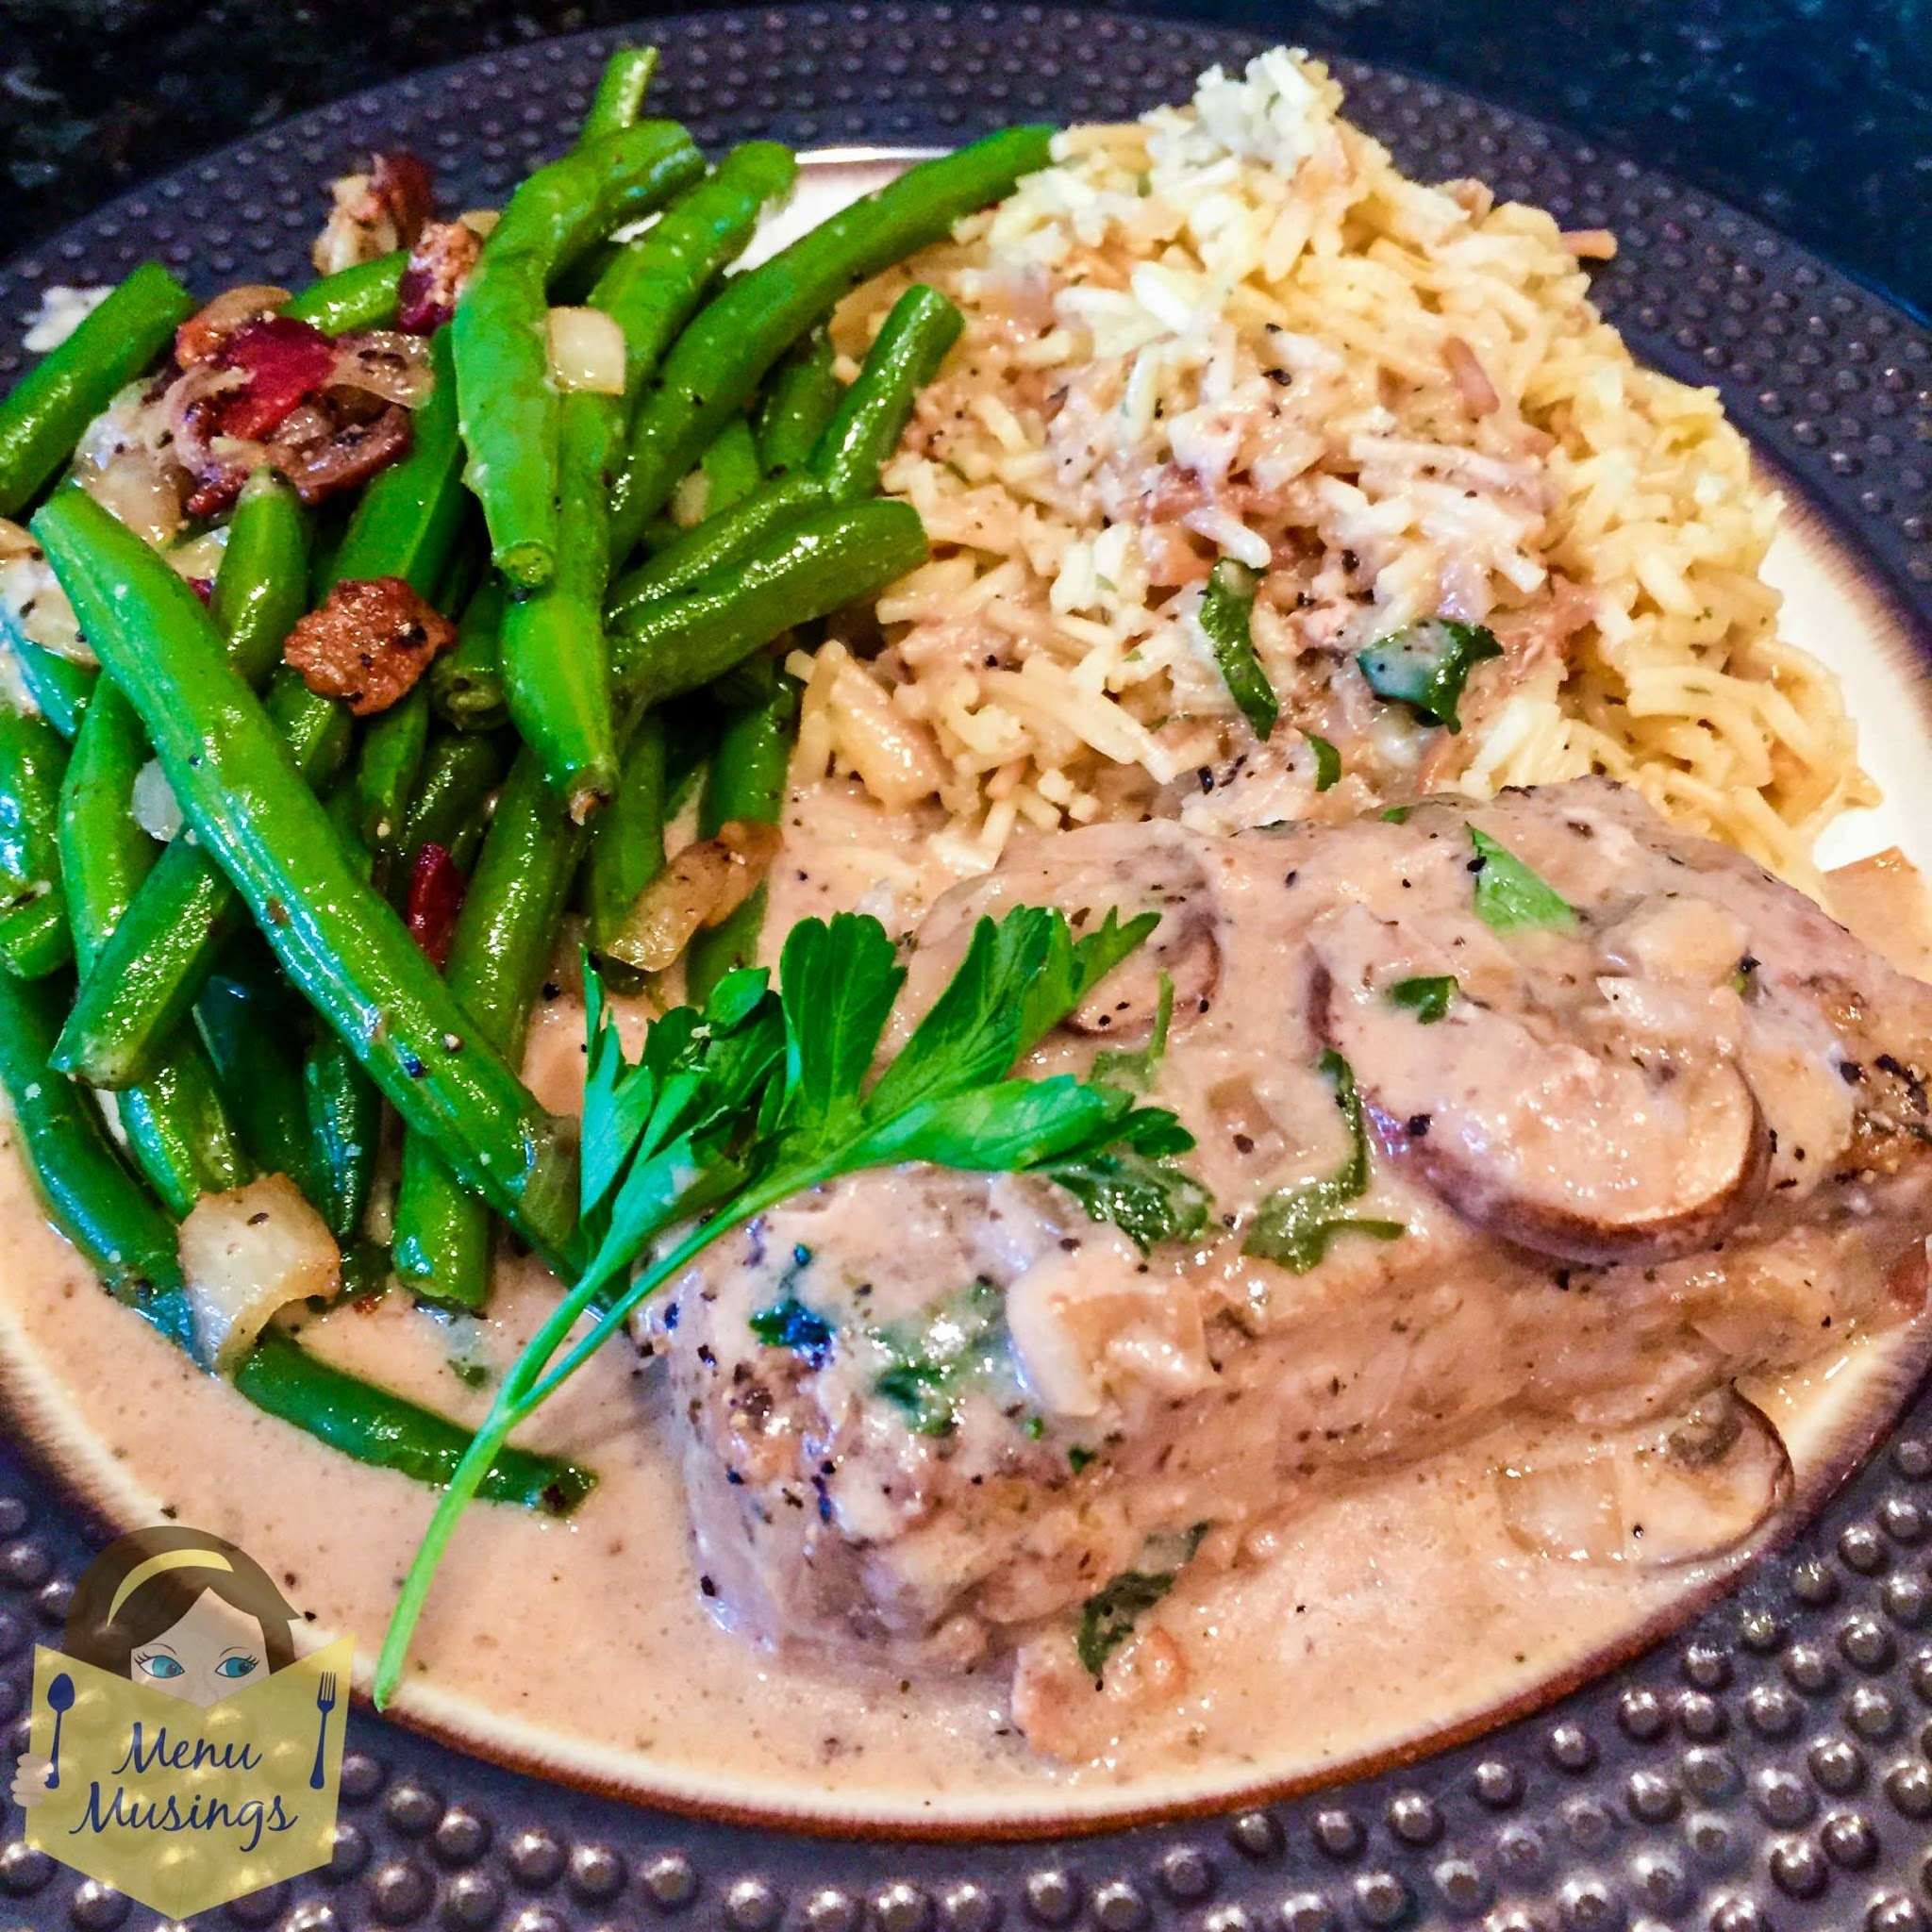 Pork Loin Chops with Port Wine Mushroom Cream Sauce